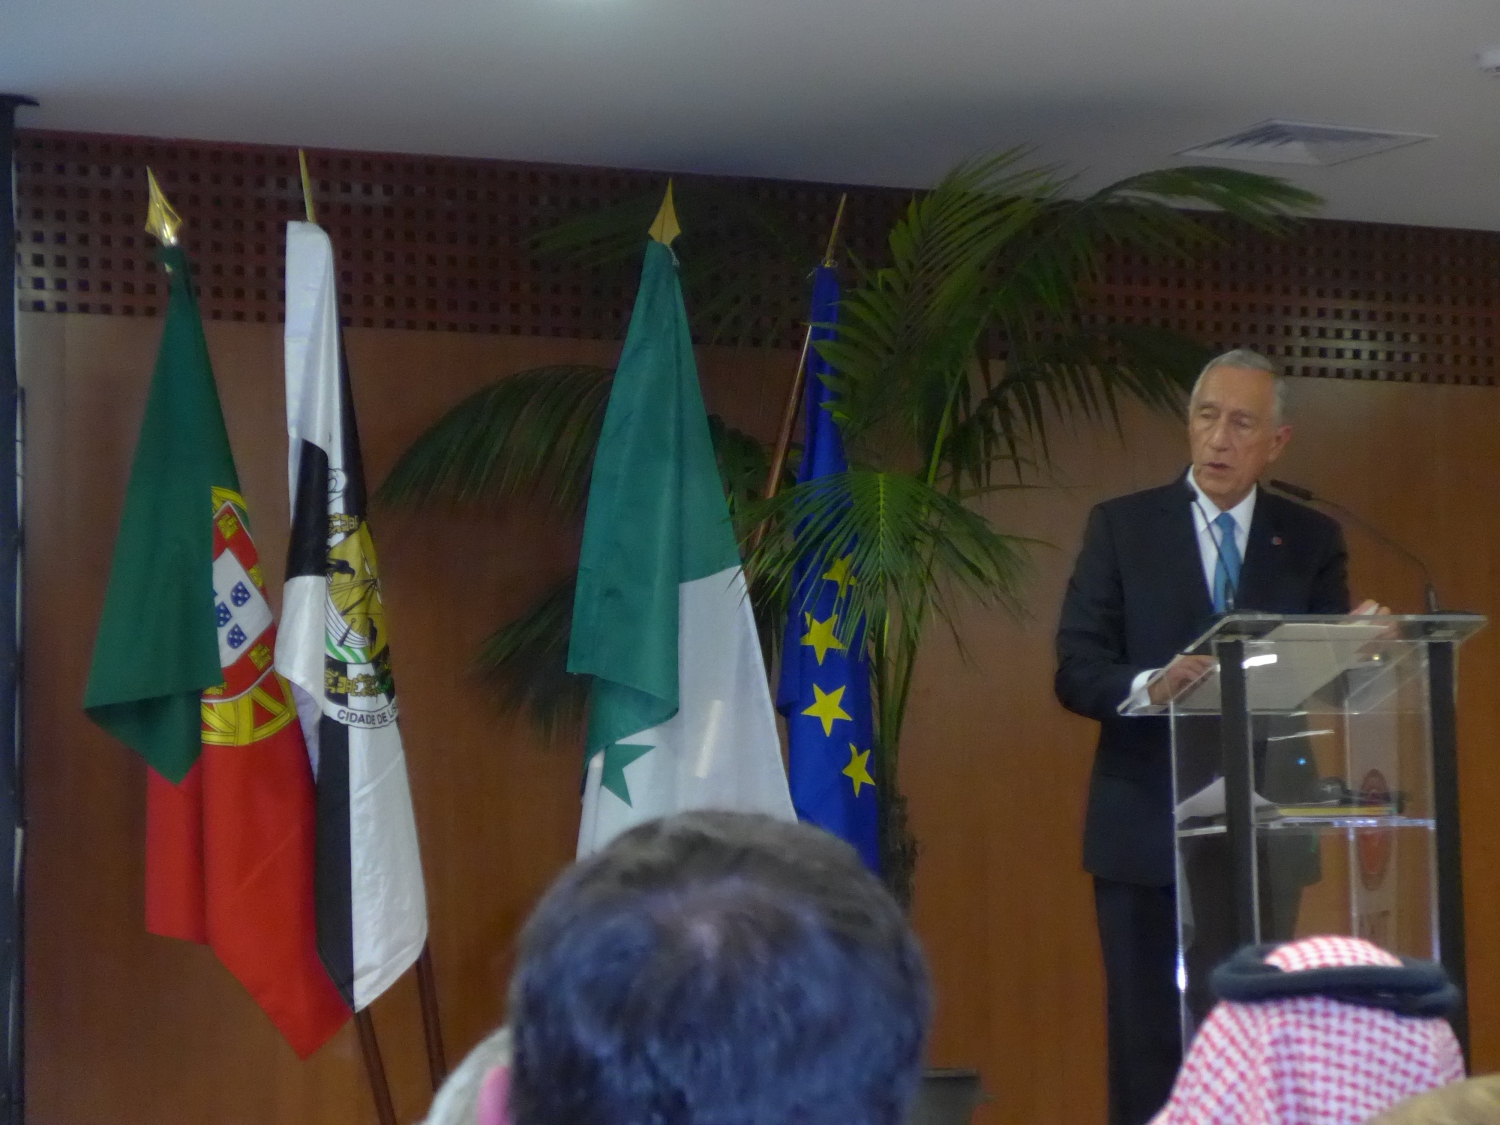 President of the Republic, Dr. Marcelo Rebelo de Sousa